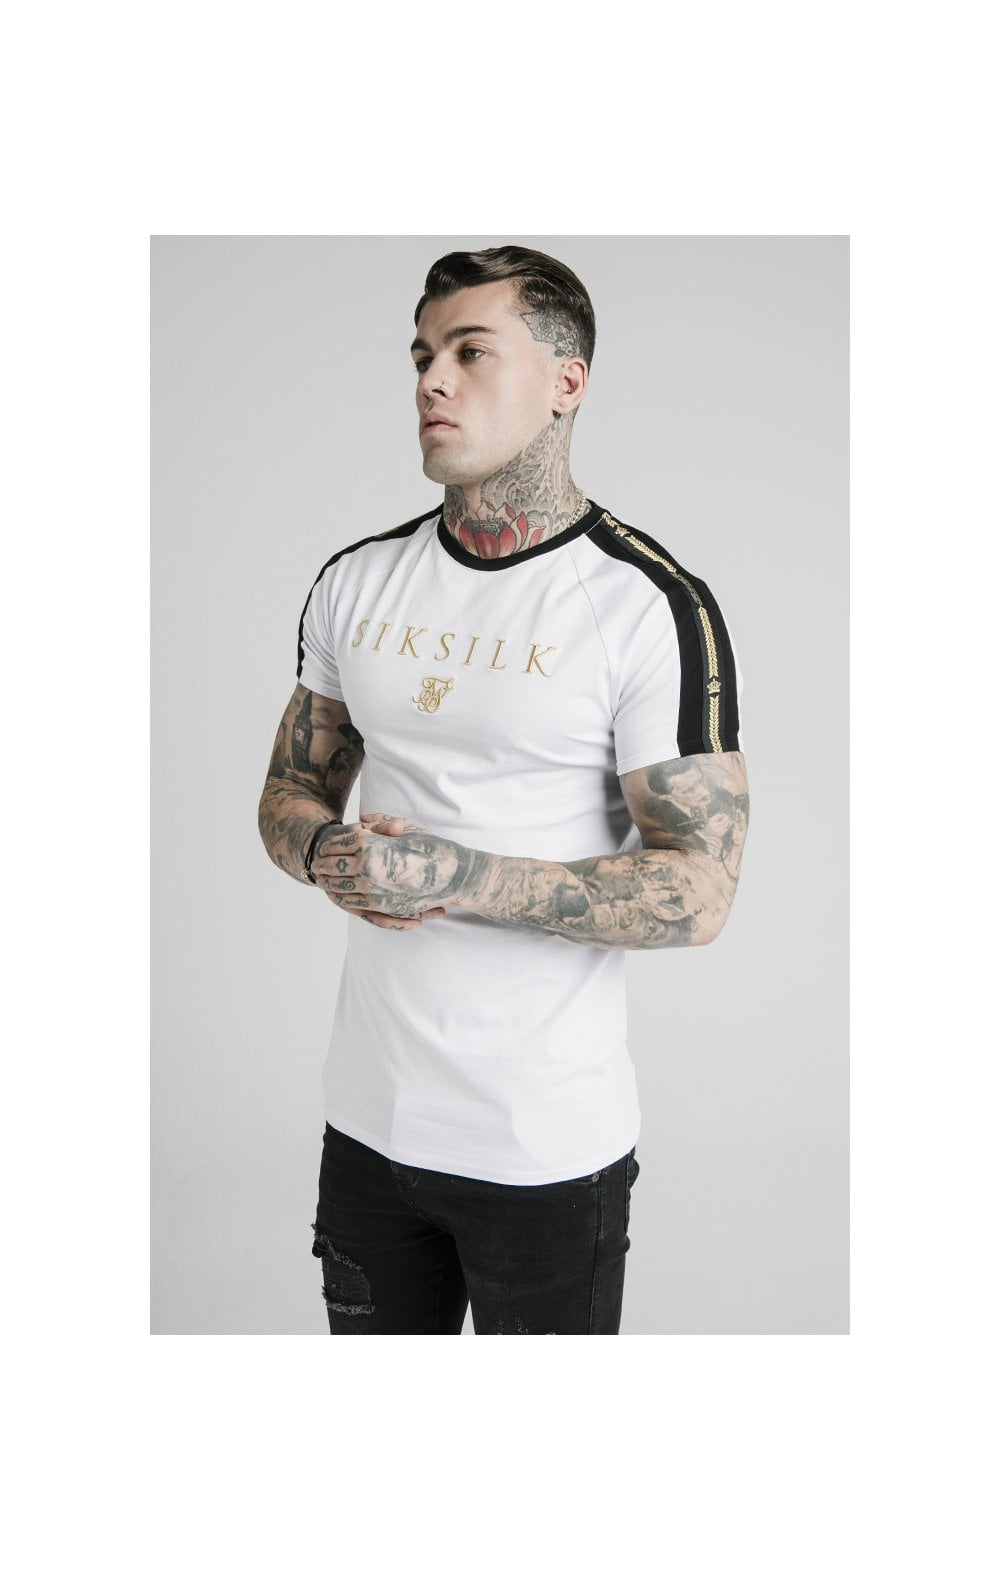 SikSilk S/S Prestige Tape Tech Tee - White, Black & Gold